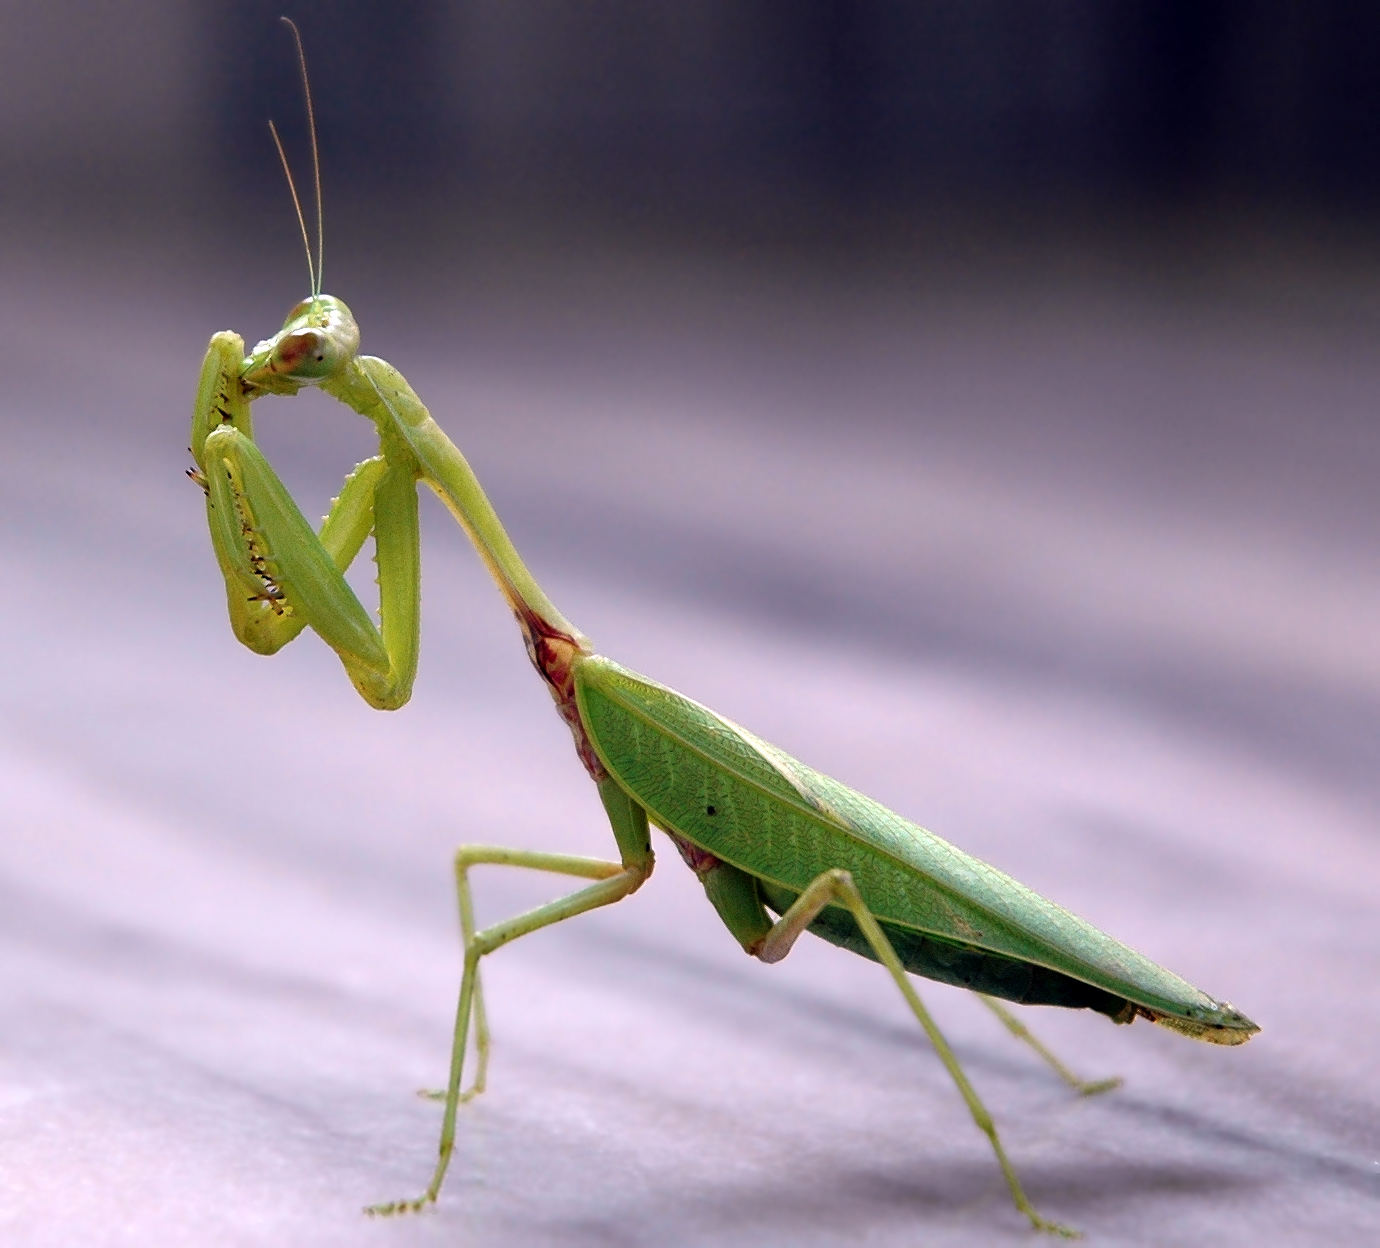 This mantis is grooming itself